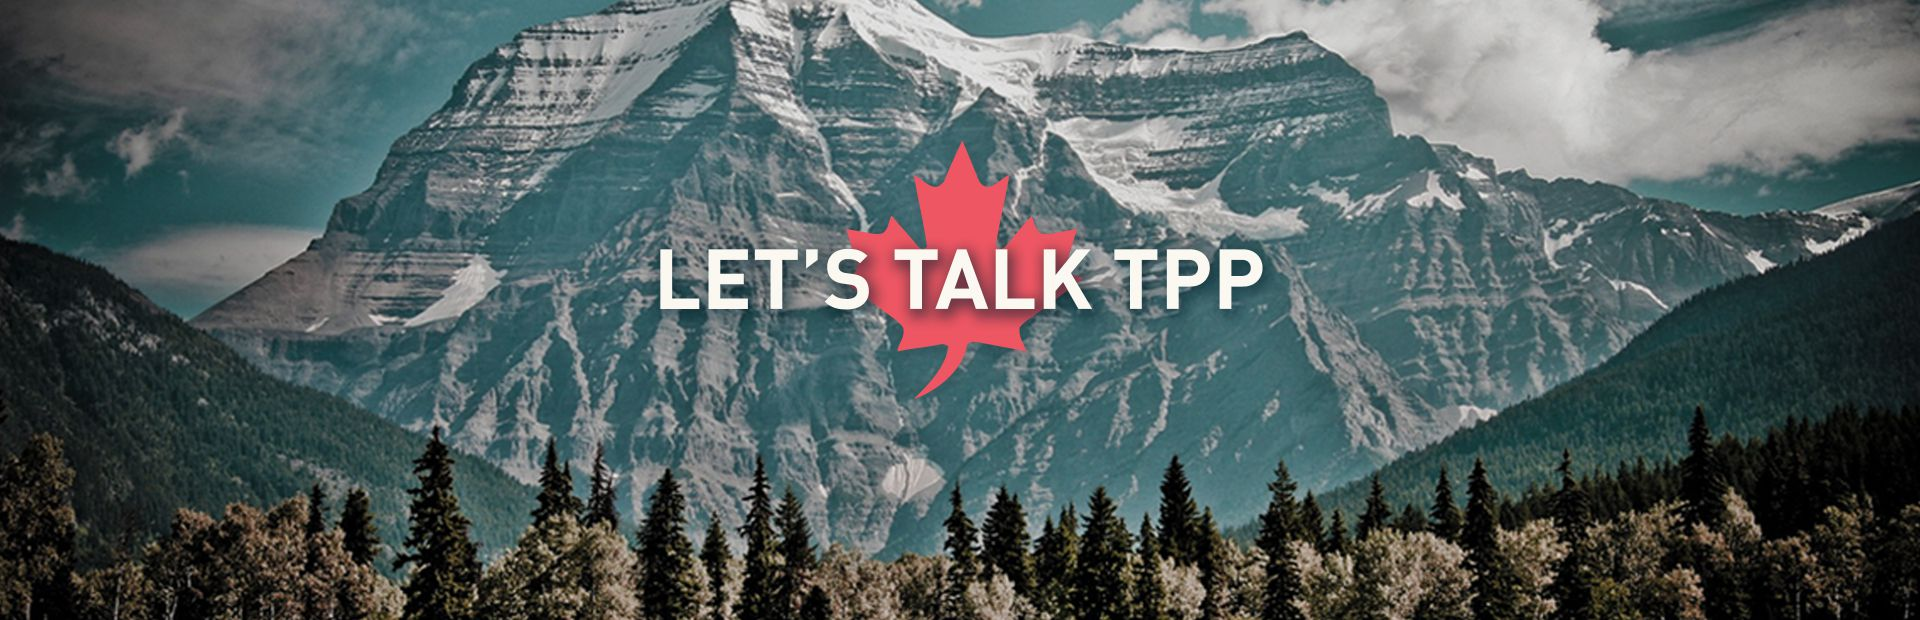 Let's Talk TPP!